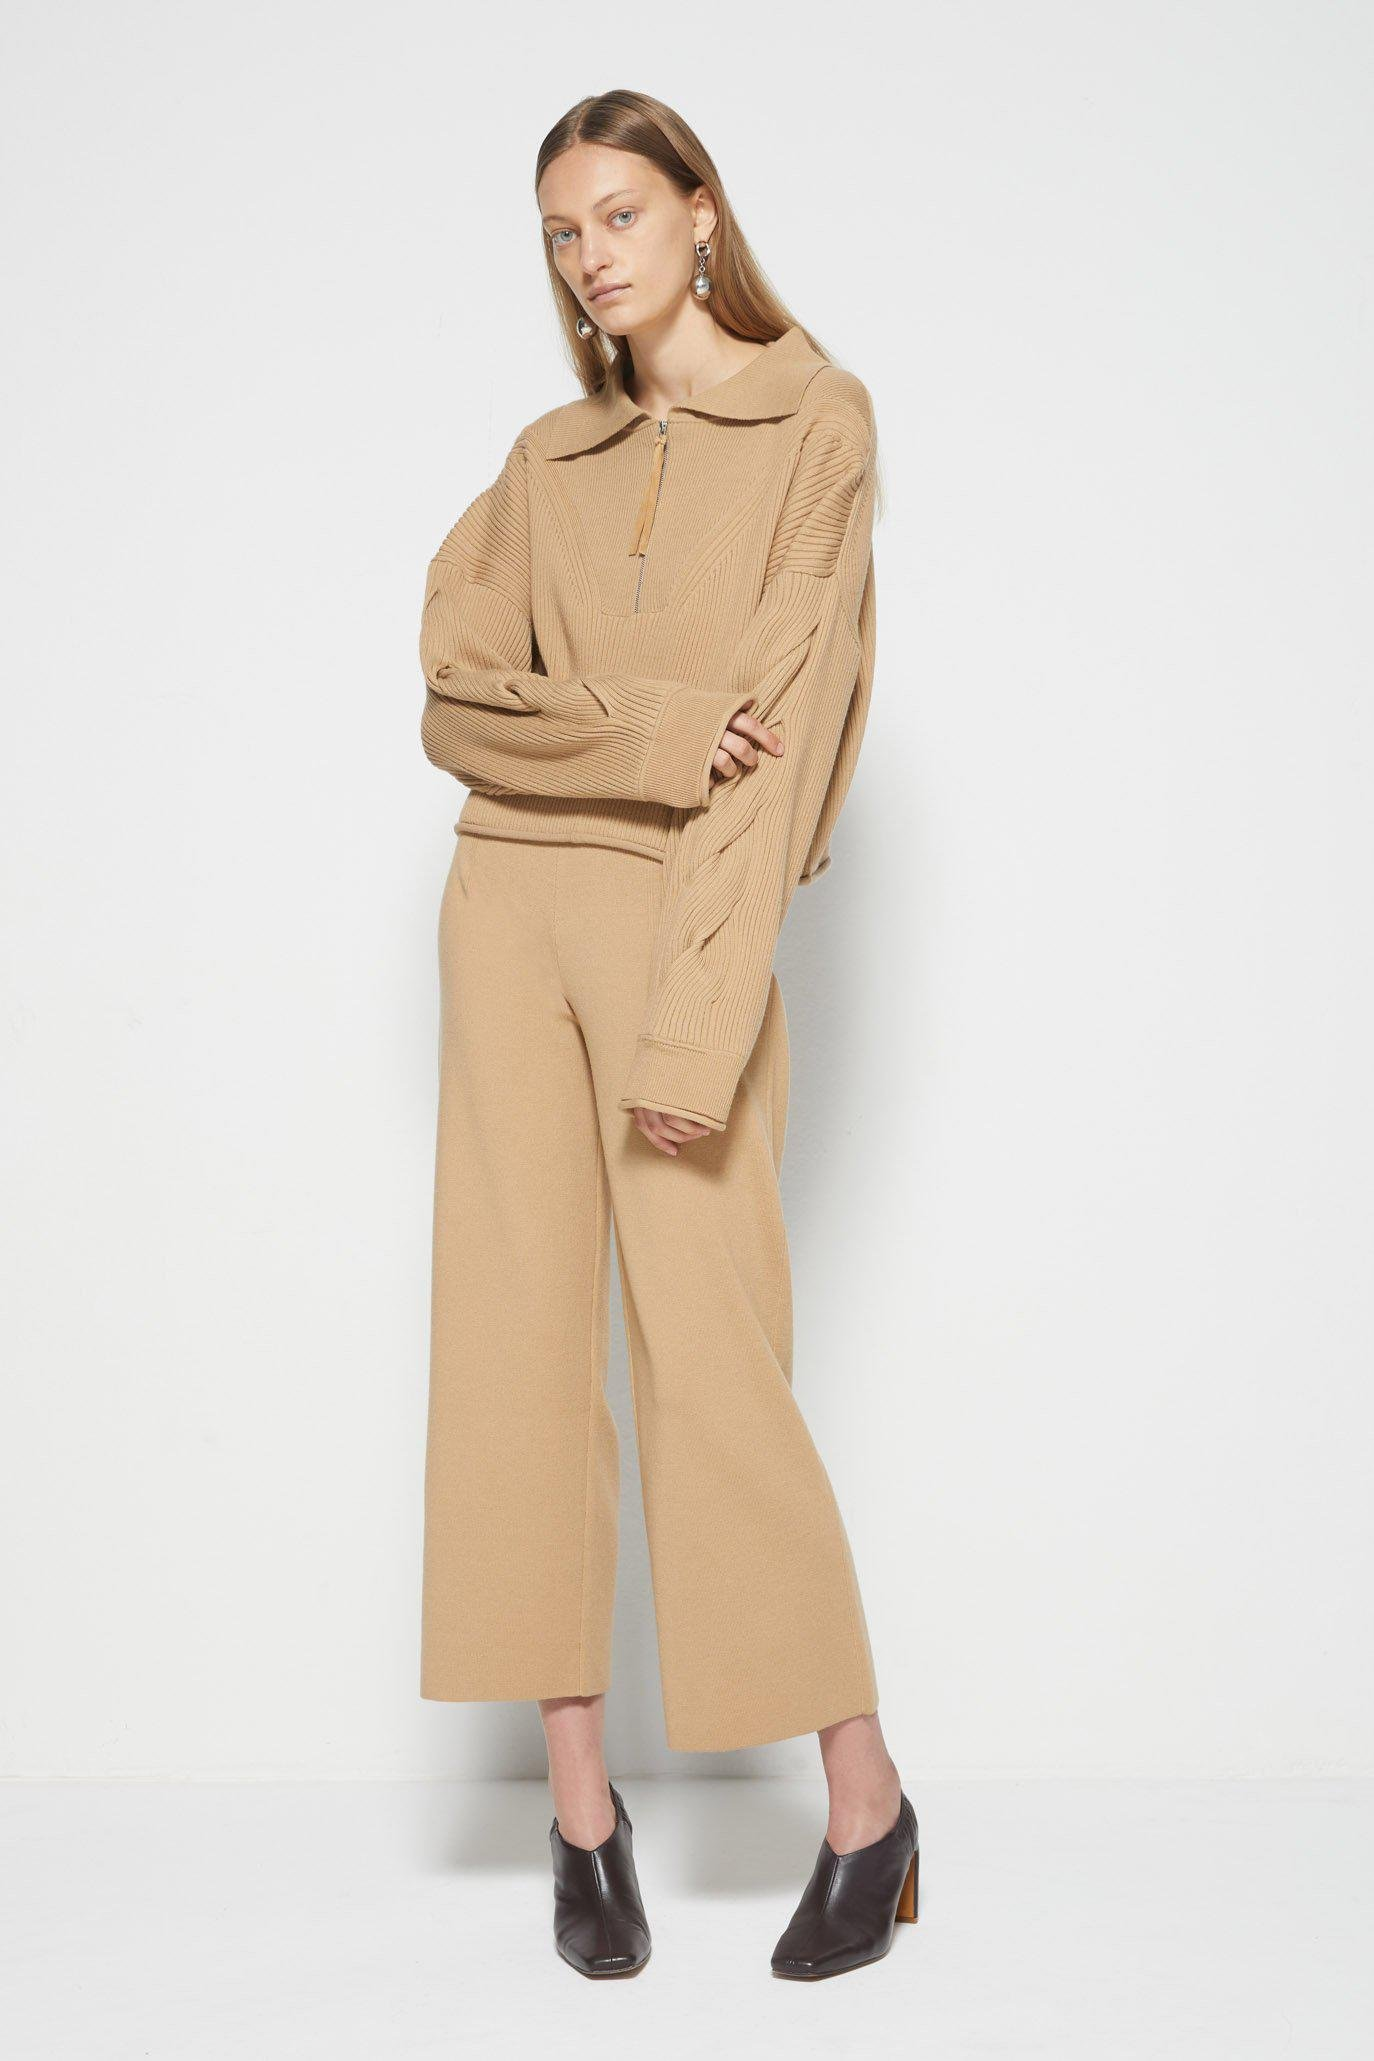 Lenore Twisted Cable Pant